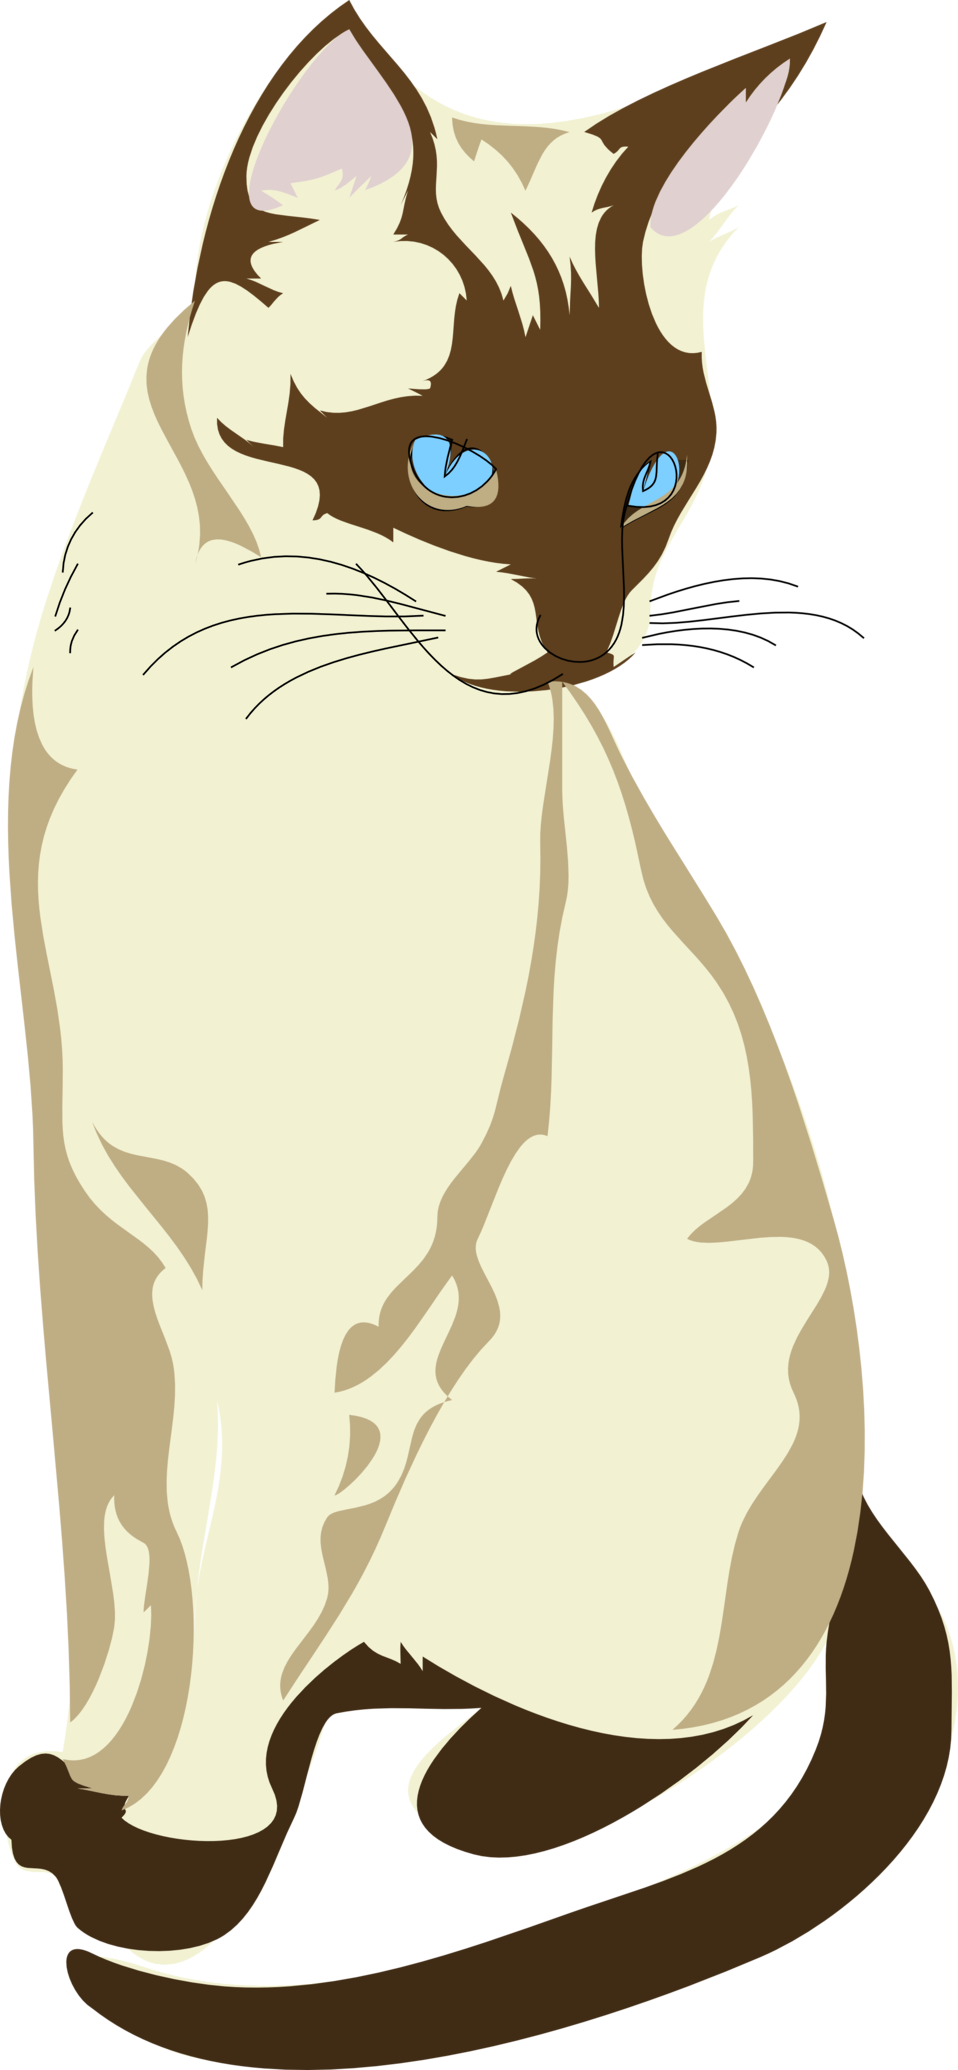 Public domain cat clipart picture transparent Public Domain Clip Art Image | Architetto -- Gatto 04 | ID ... picture transparent